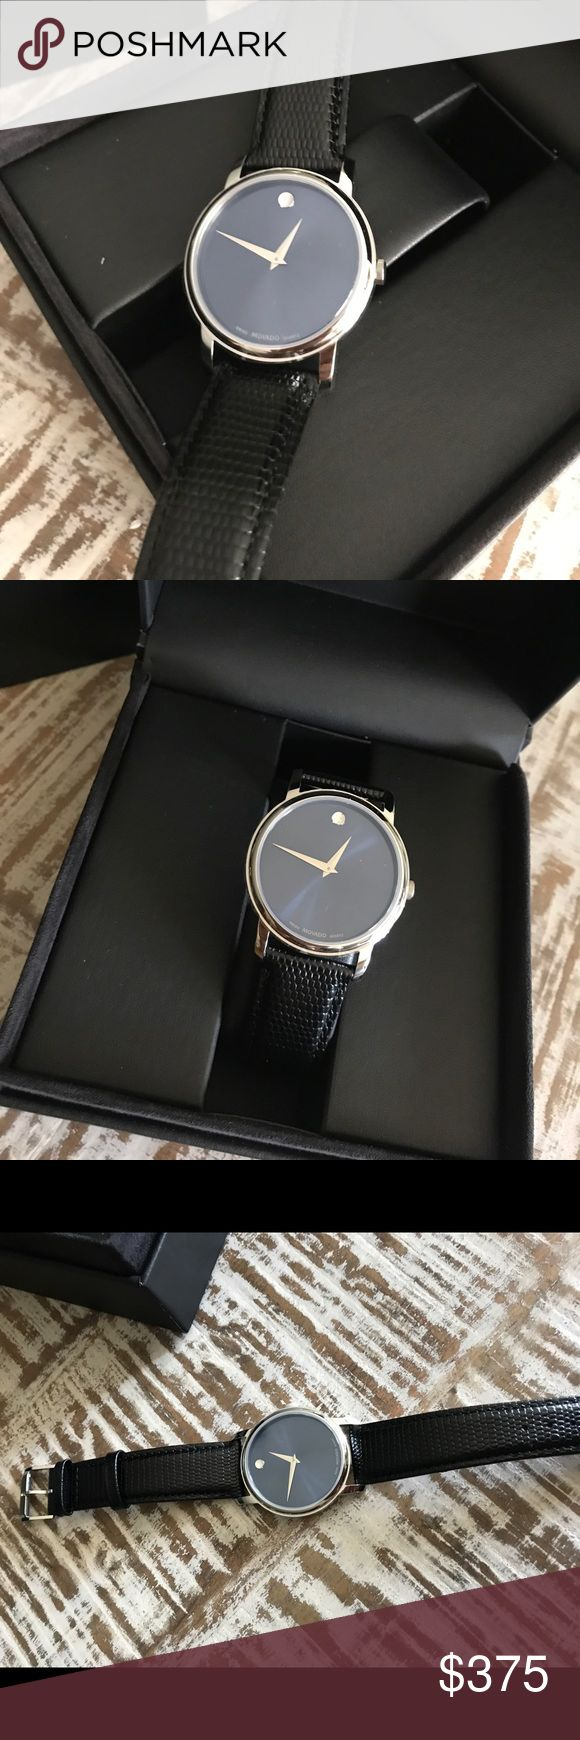 Men's Movado watch brand new movado watch. never worn. bought as a gift and didn't like it. Movado Accessories Watches